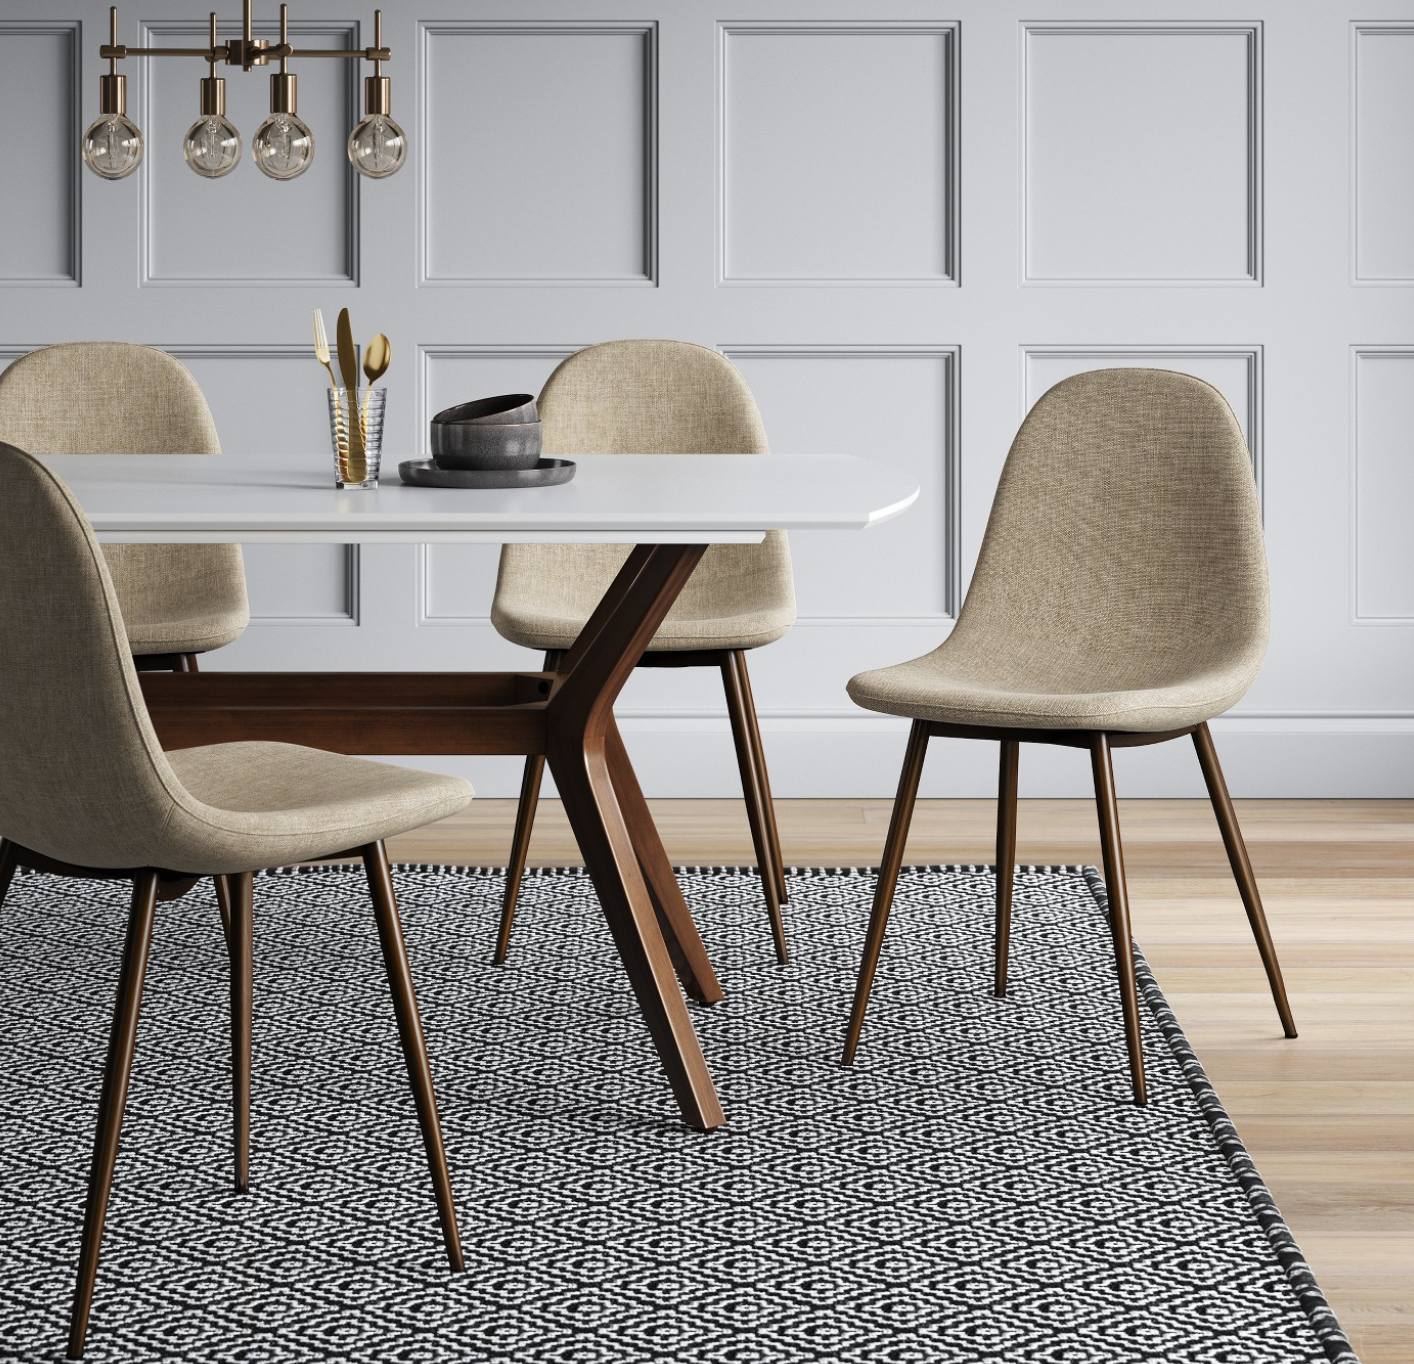 modern dining room on a budget